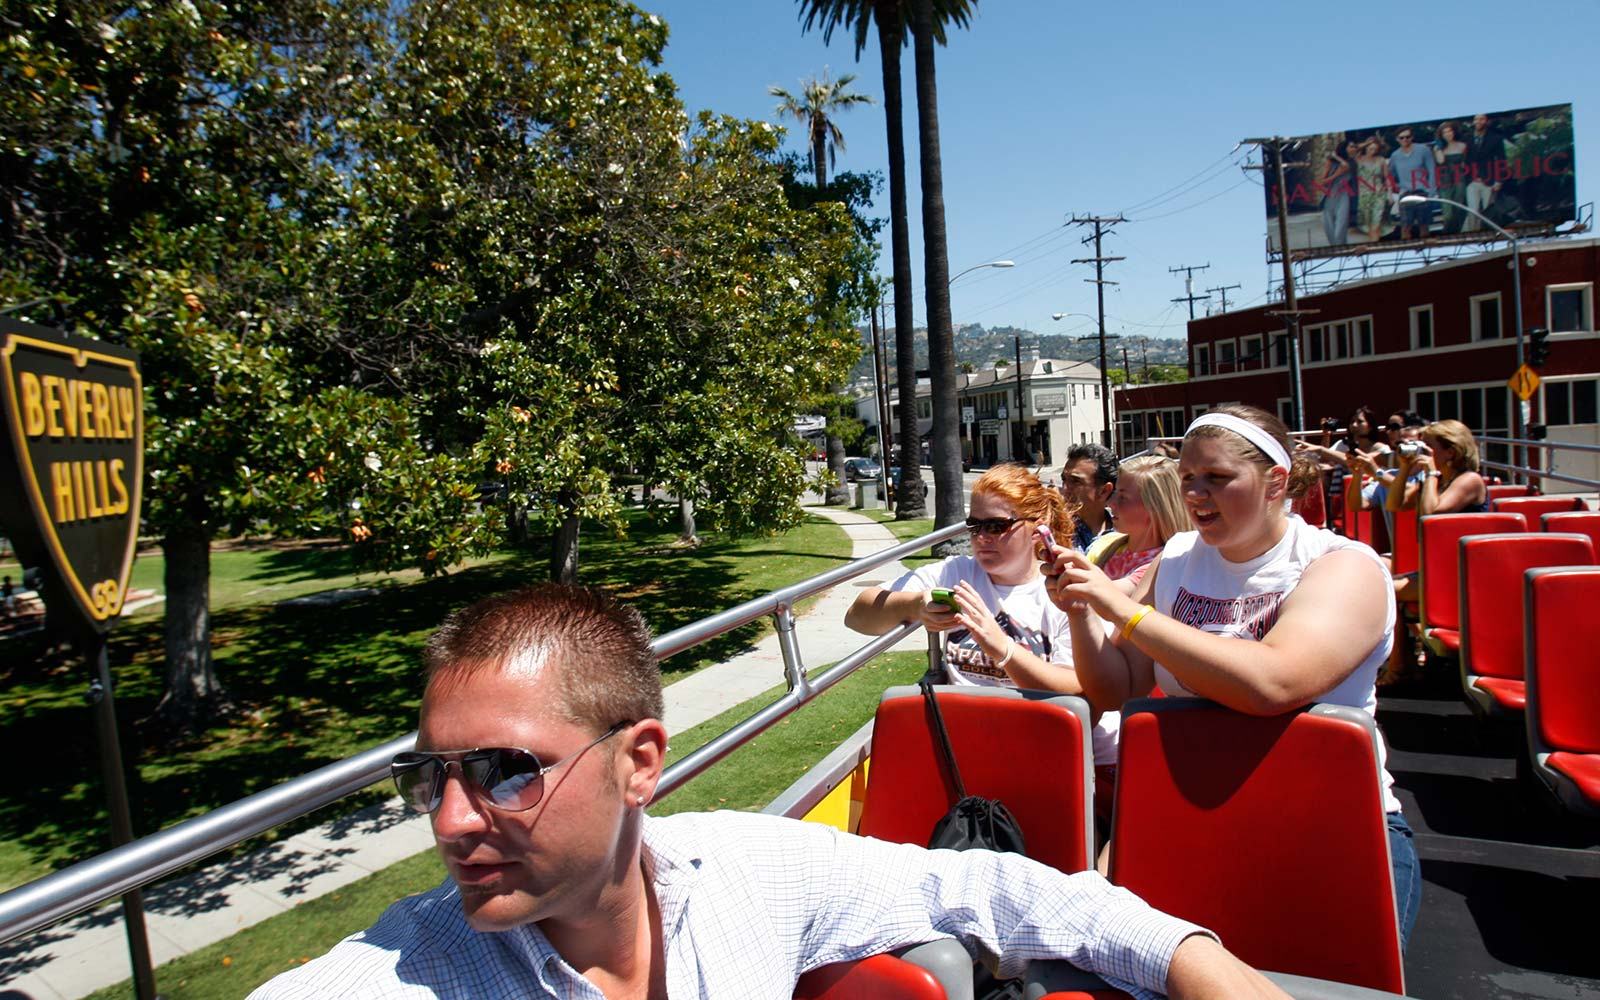 hollywood beverly hills california tourist sightseeing tour bus